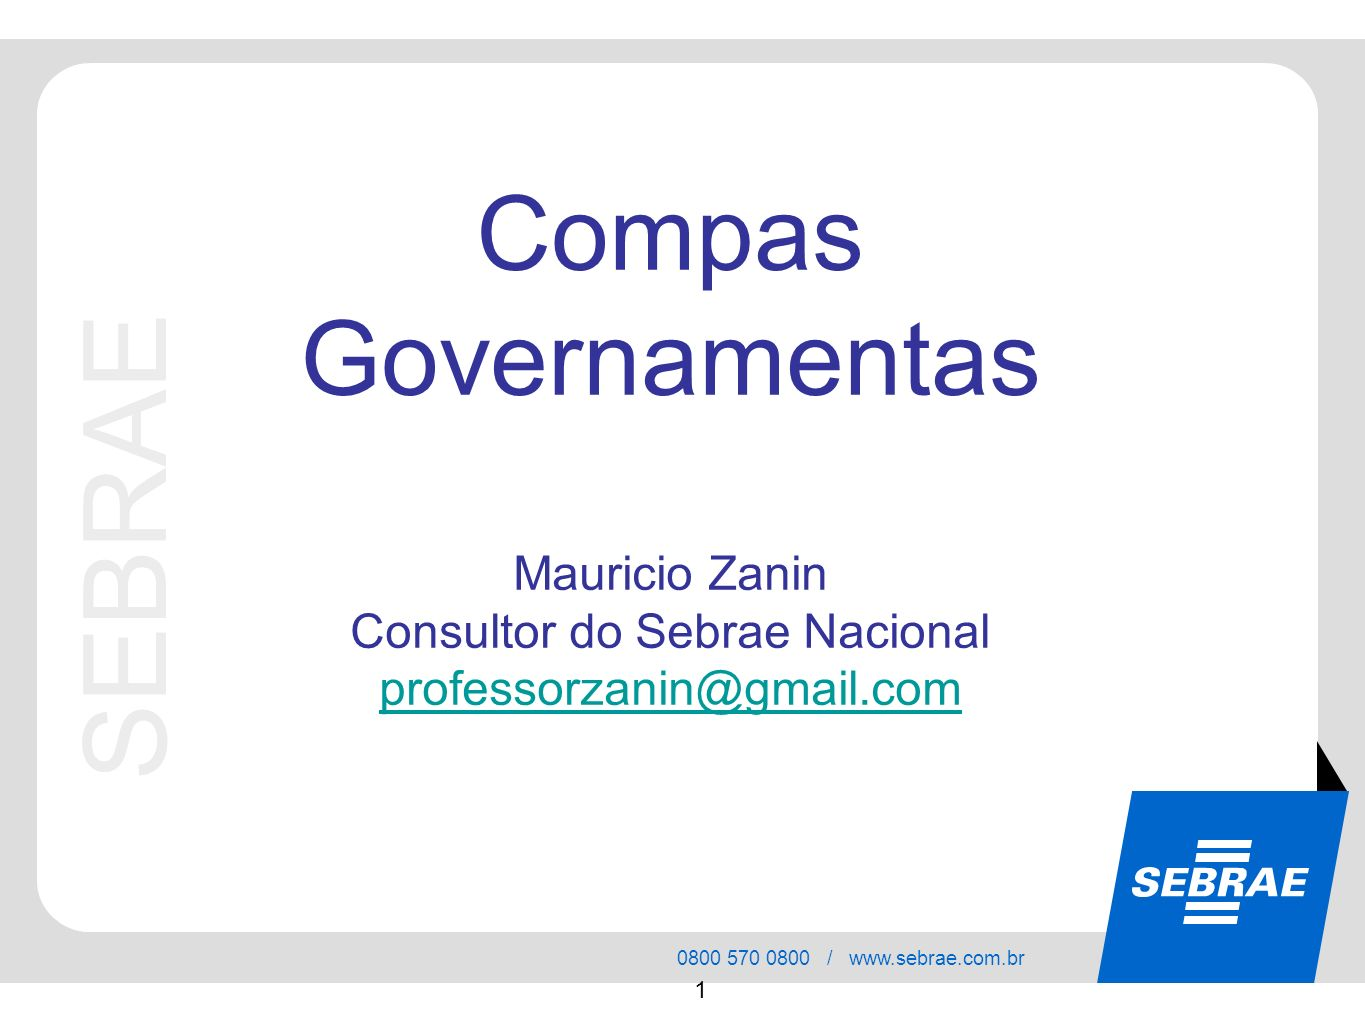 Consultor do Sebrae Nacional